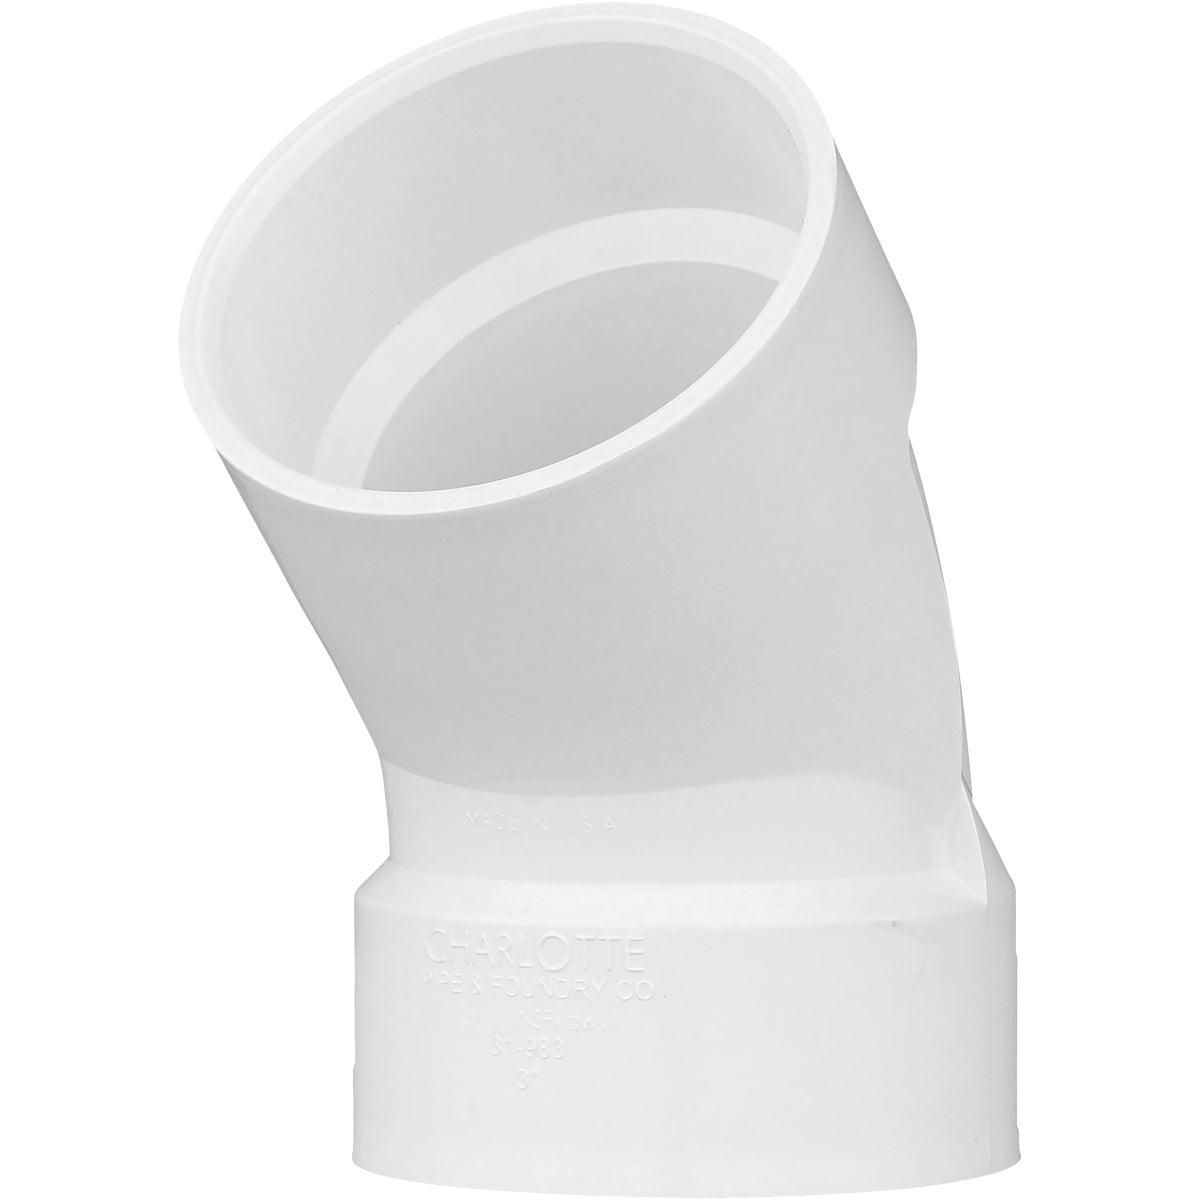 "3"" 45D PVC-DWV ELBOW - 70630 by Genova Inc  Pvc Dwv"